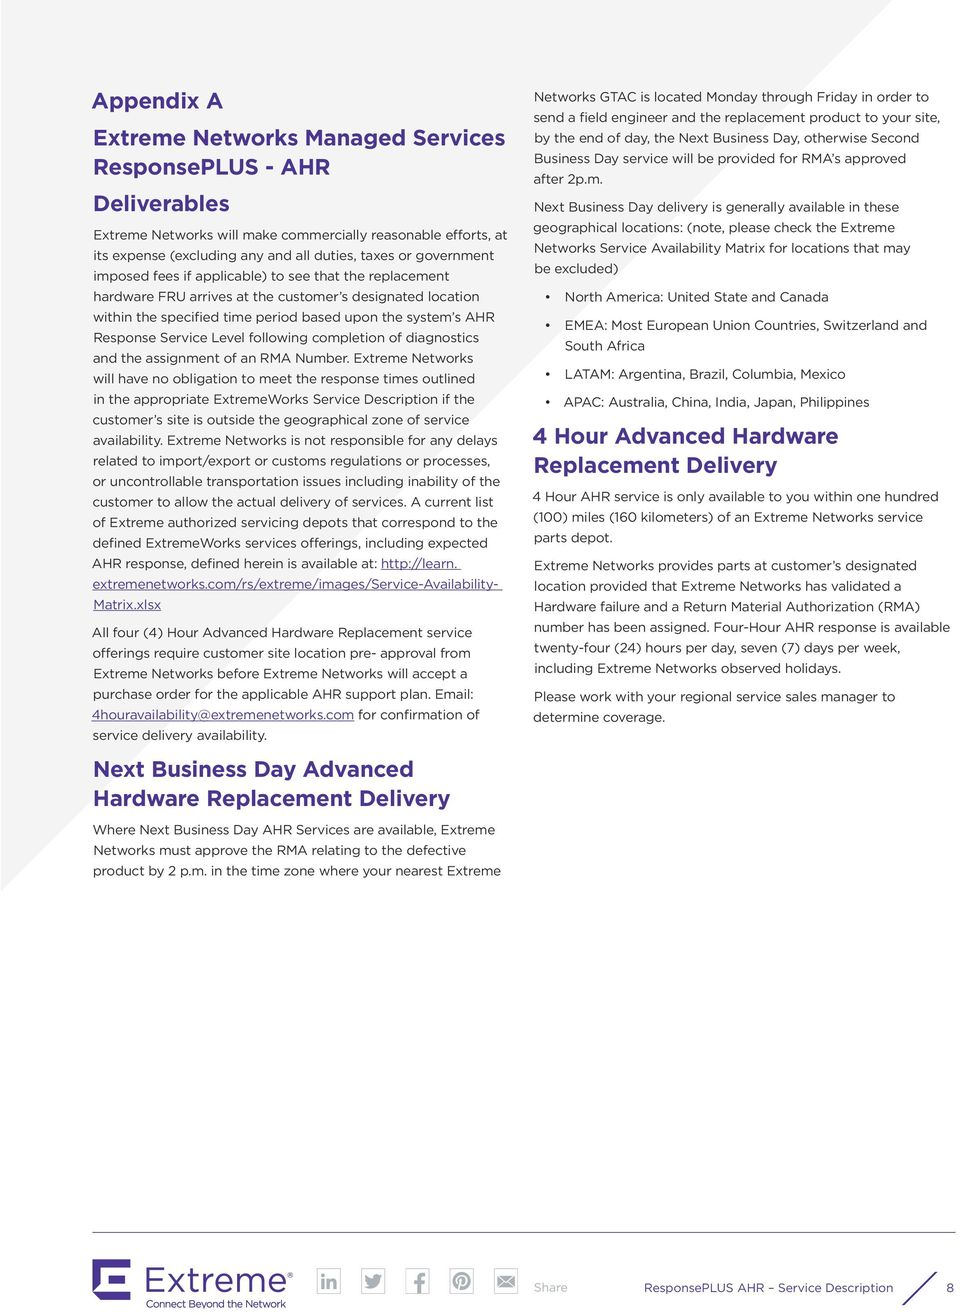 ExtremeWorks Managed Services ResponsePLUS - AHR (Advanced